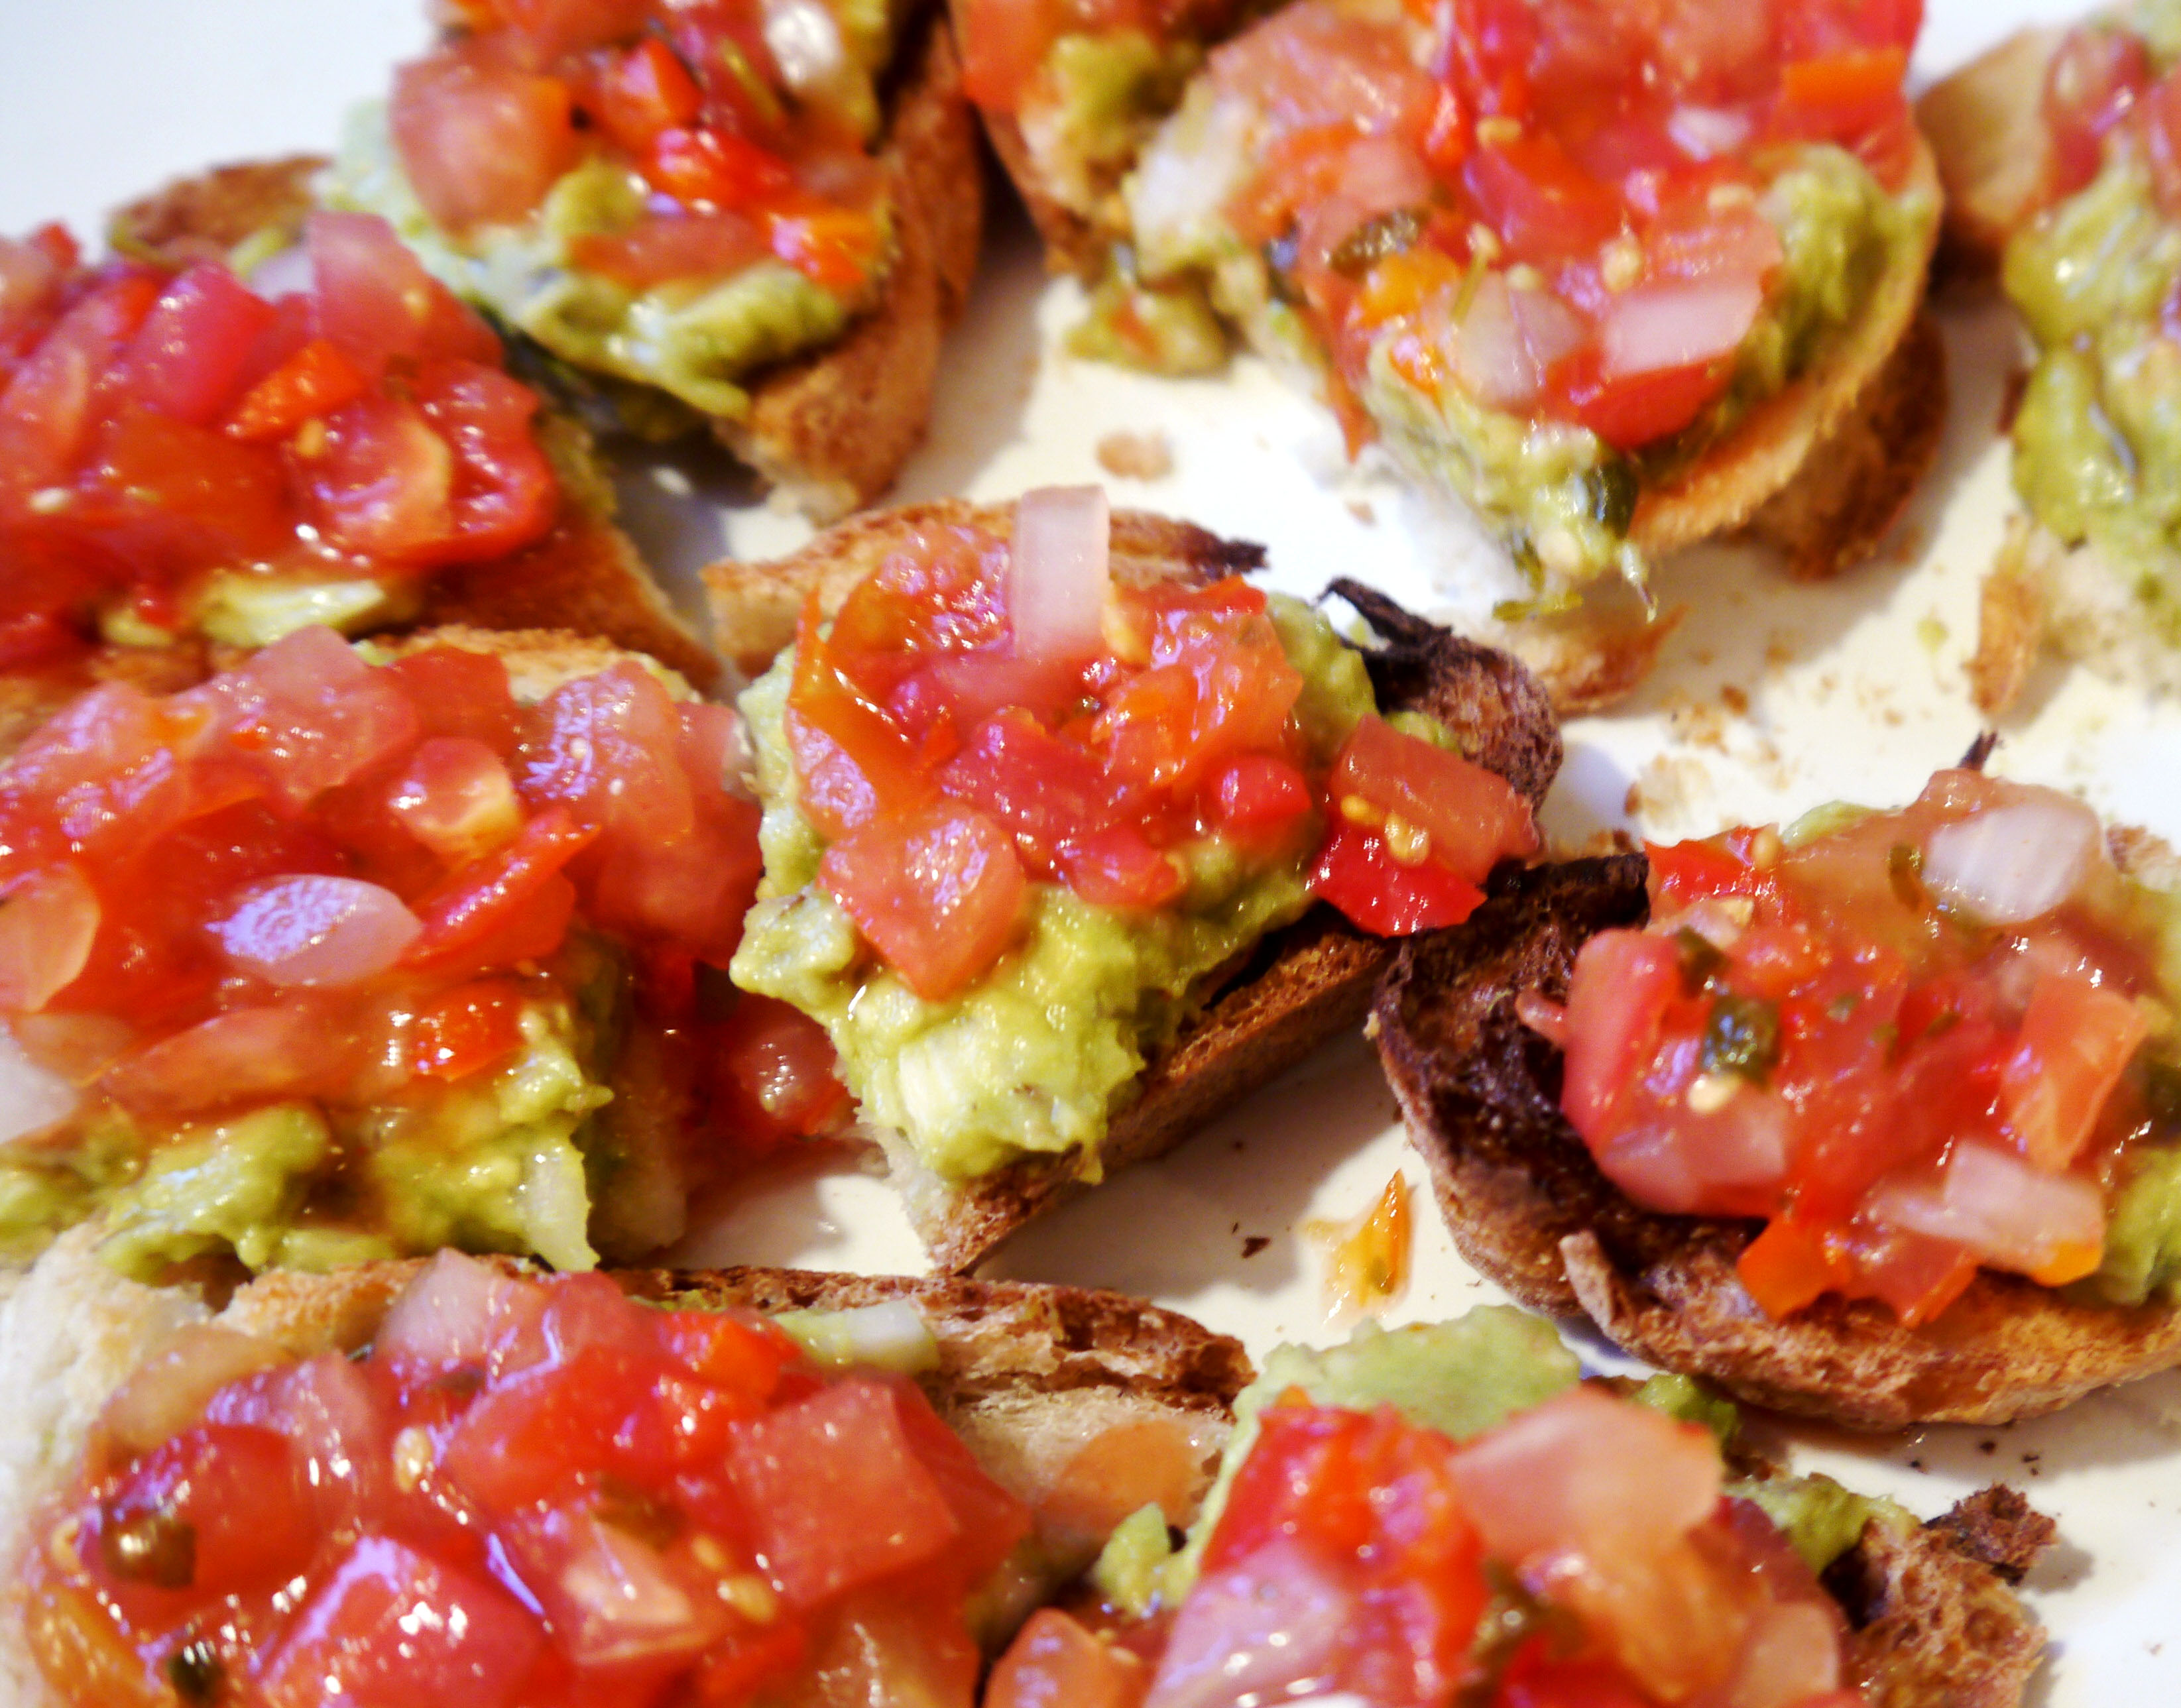 Crostini with salsa